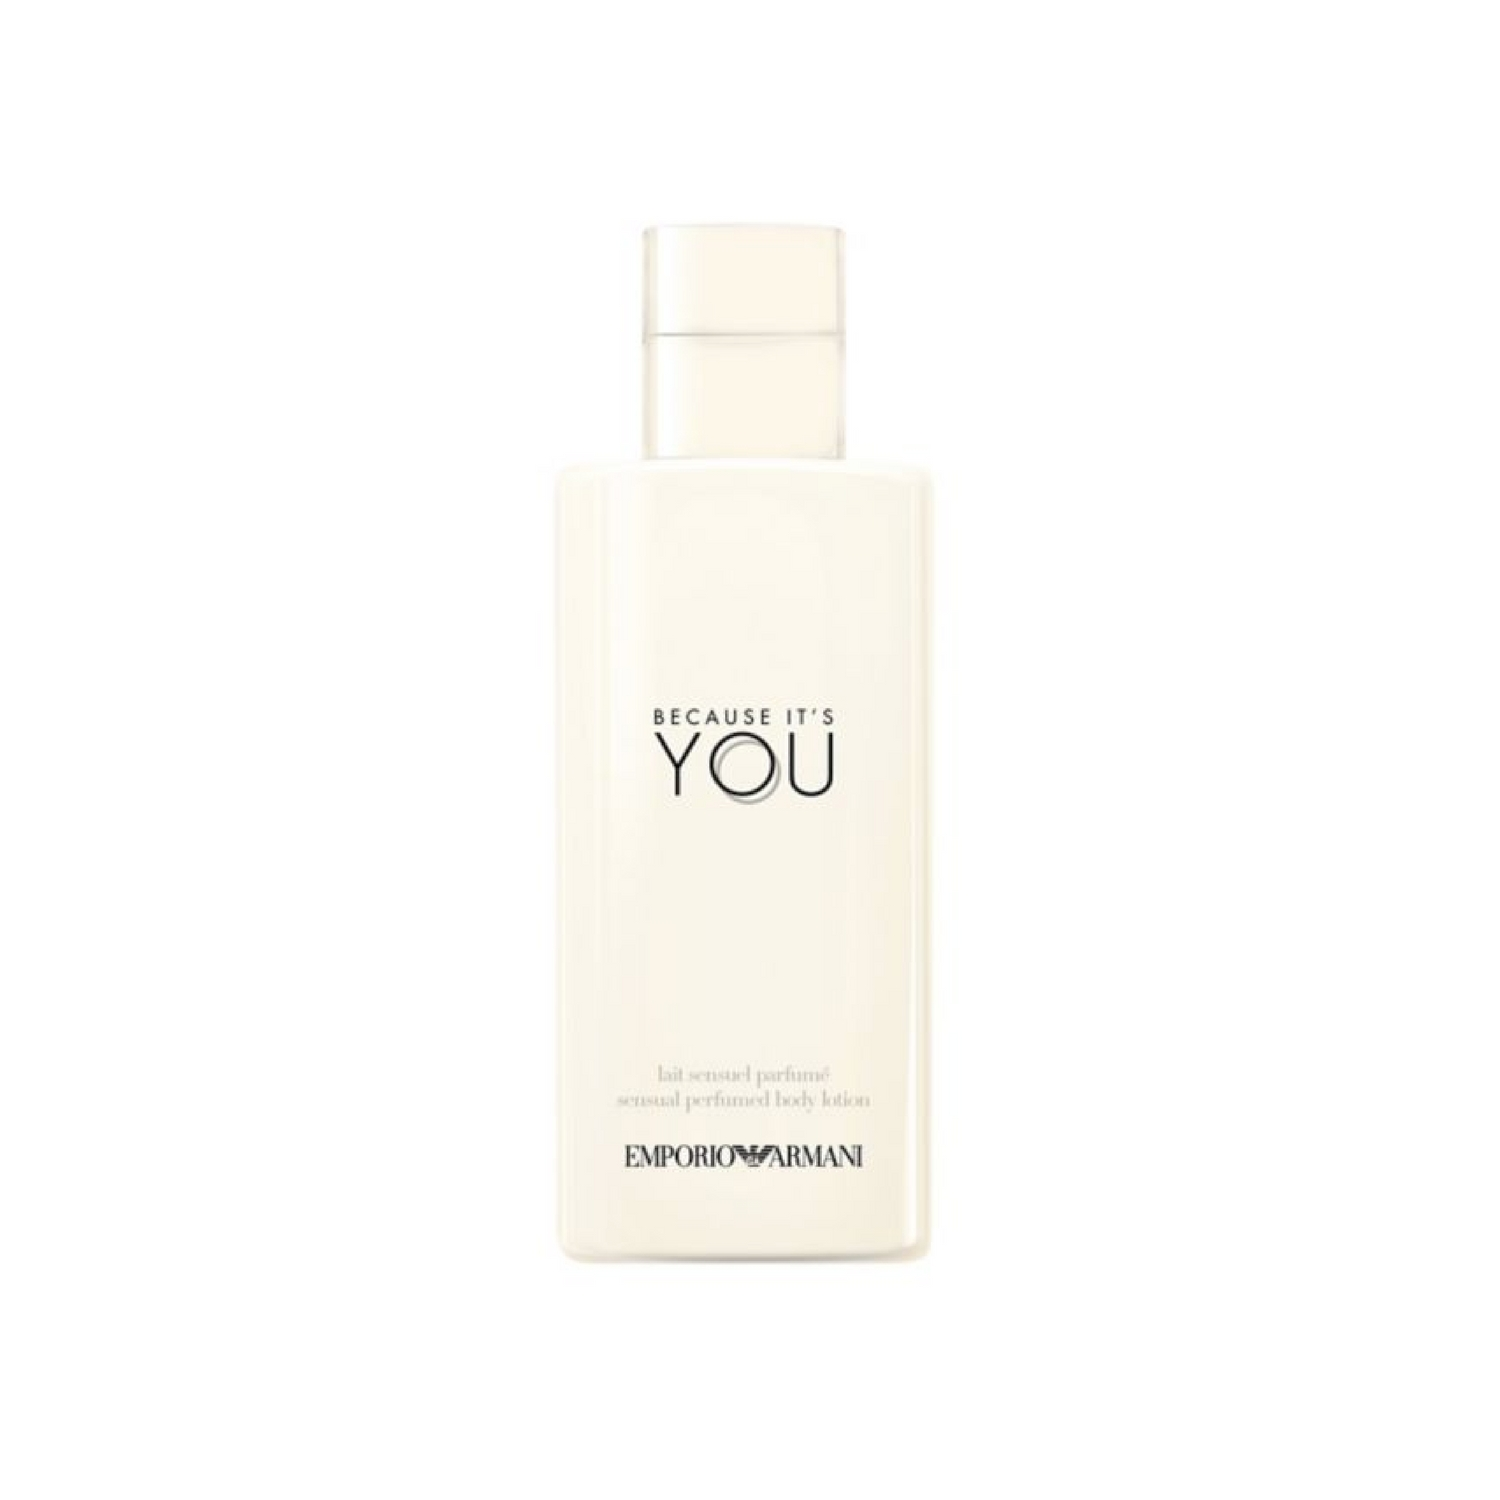 Emporio Armani Because It's You lotion